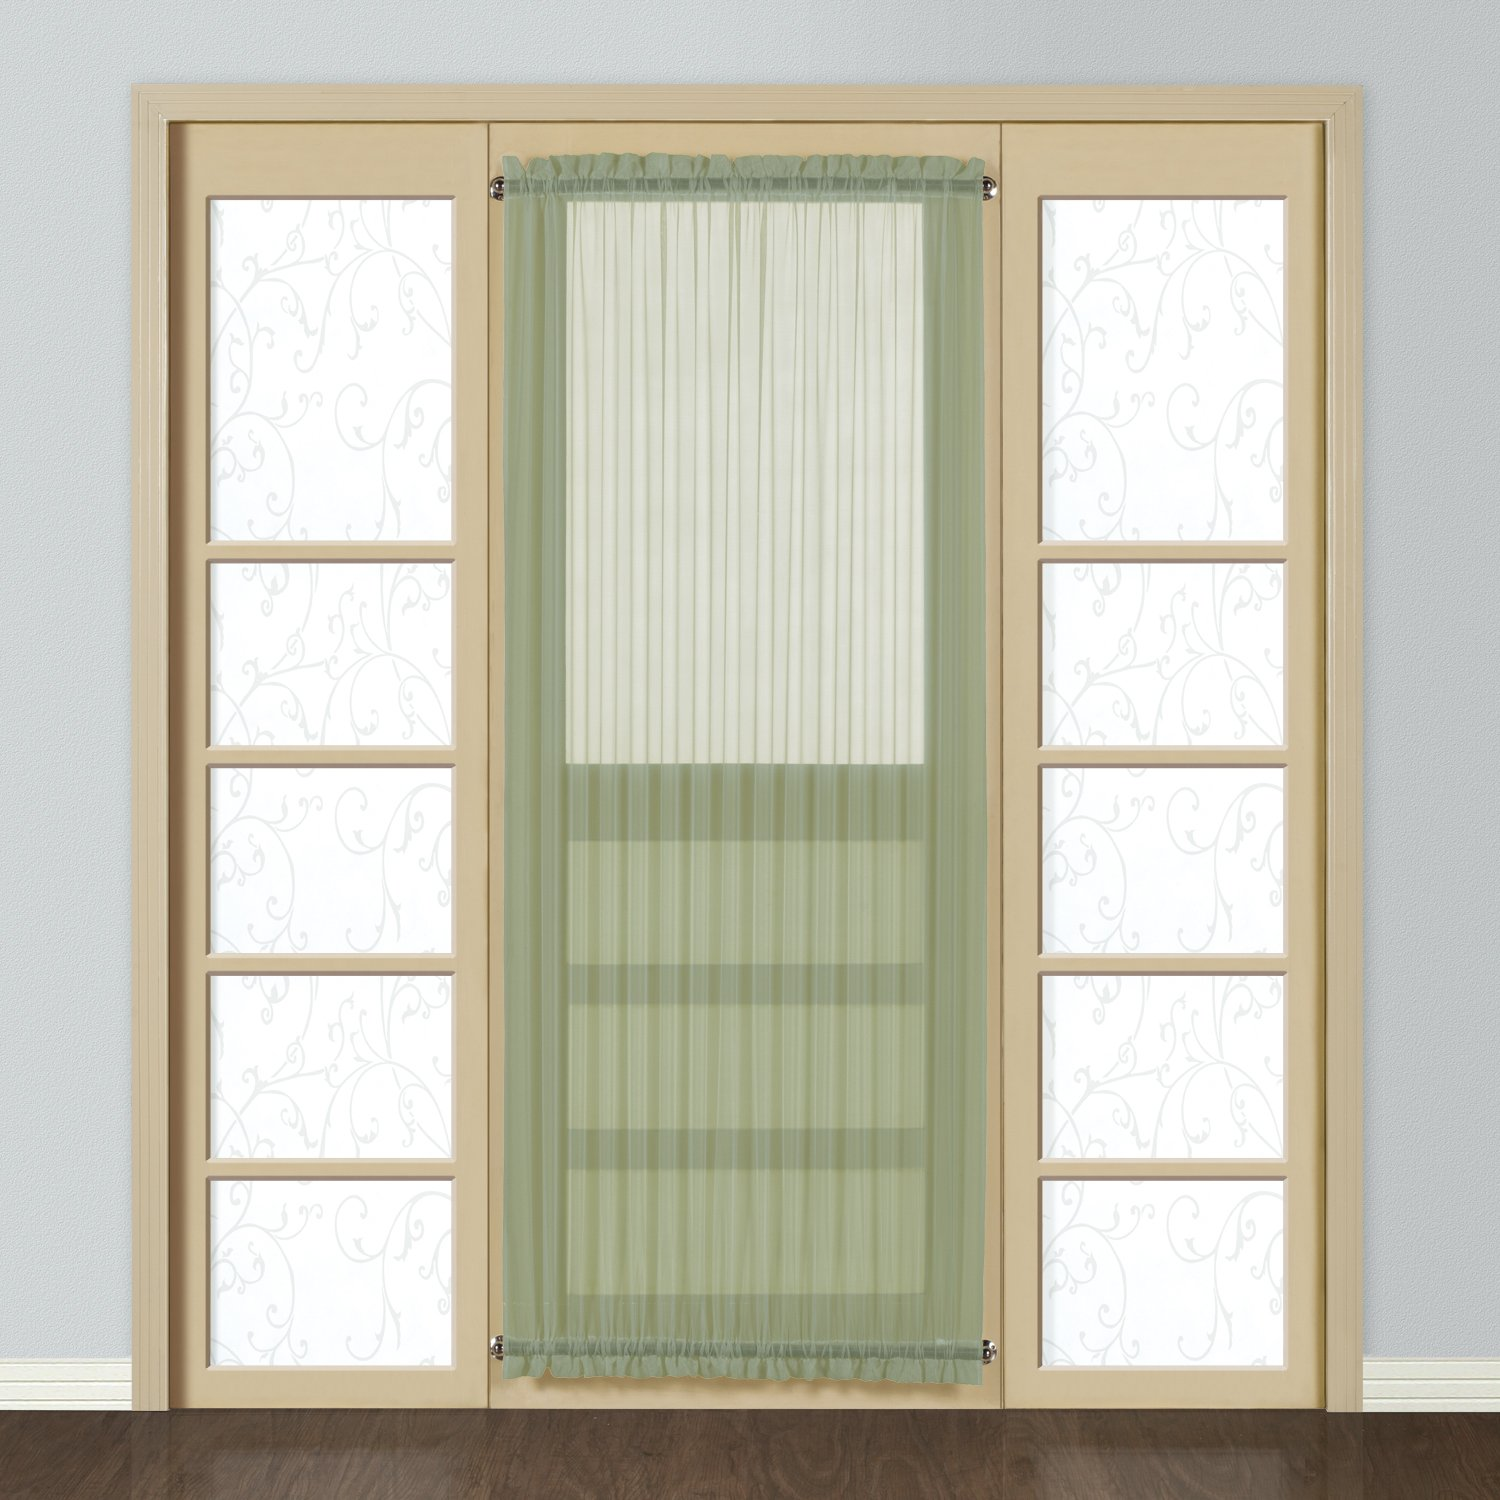 Design Door Curtains amazon com united curtain monte carlo sheer door panel 59 by 40 inch egg home kitchen